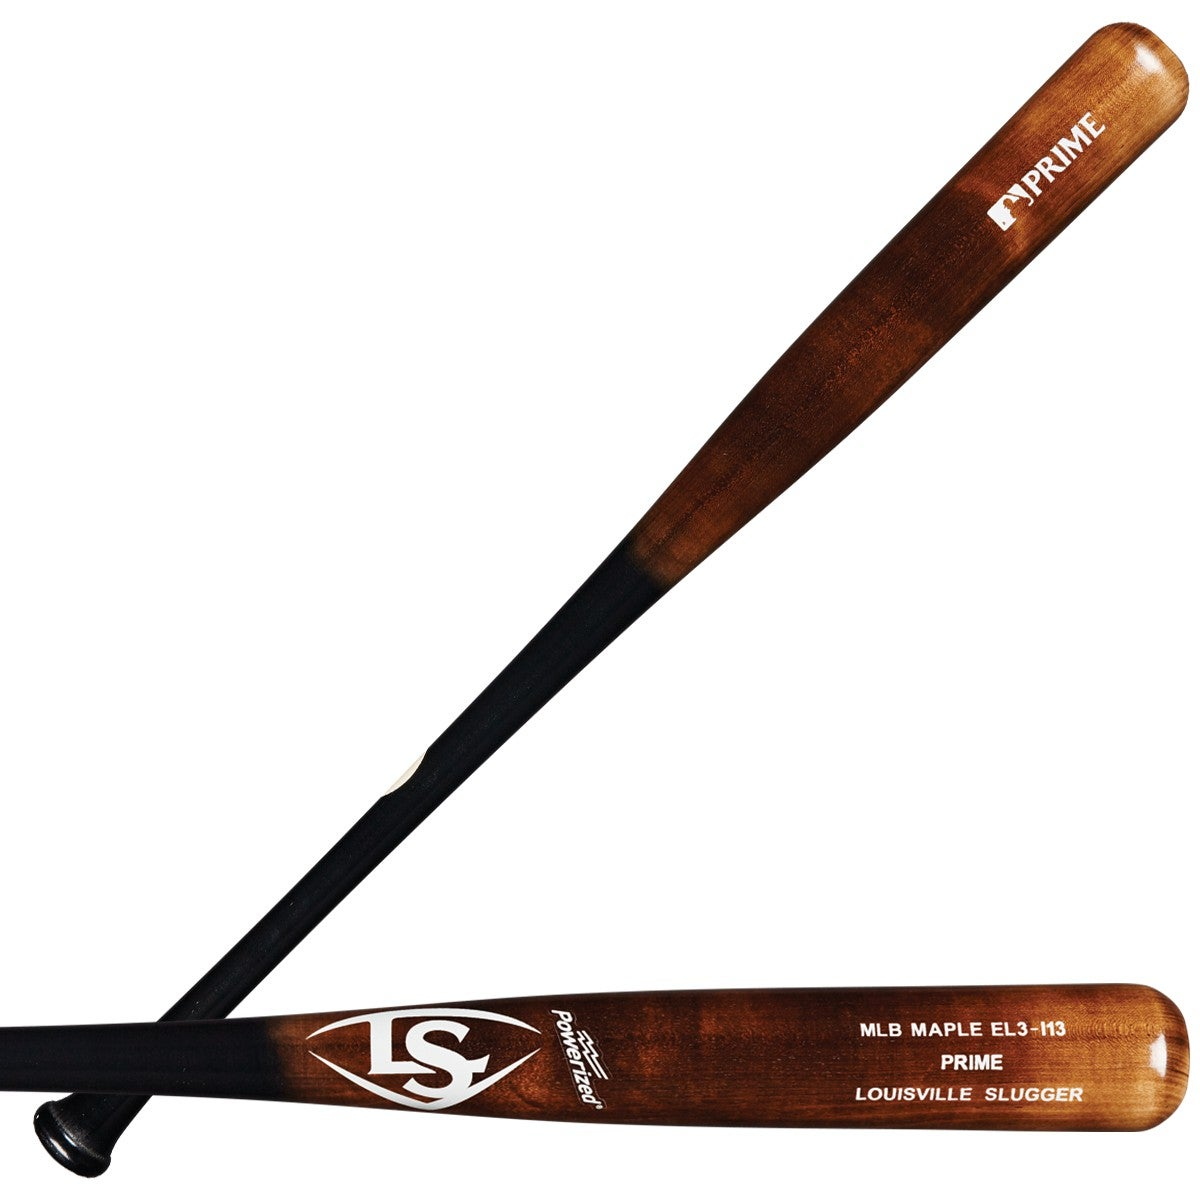 ? MLB Prime Maple EL3-I13 Baseball Bat